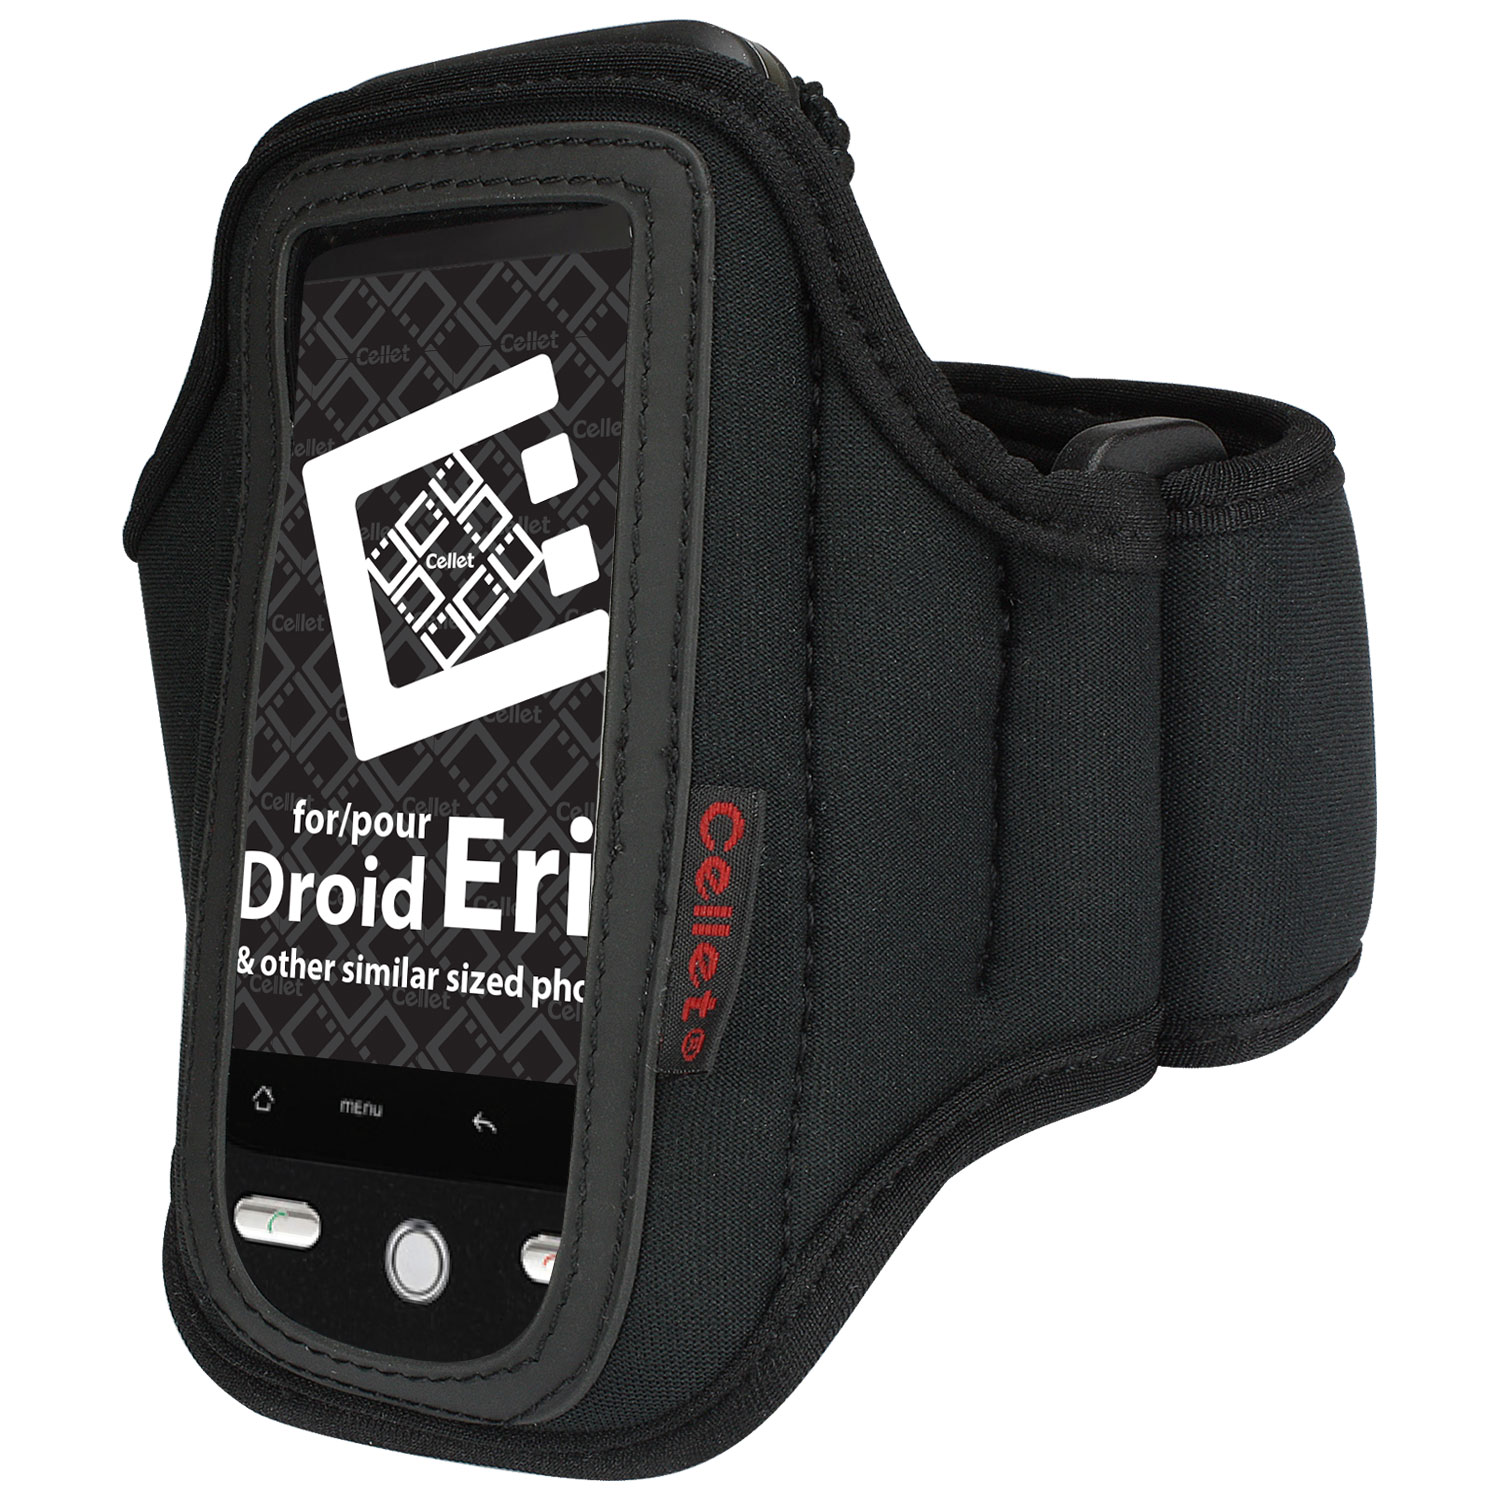 Cellet Black Neoprene Armband for LG Vu CU920 and Other Similar Sized Phones